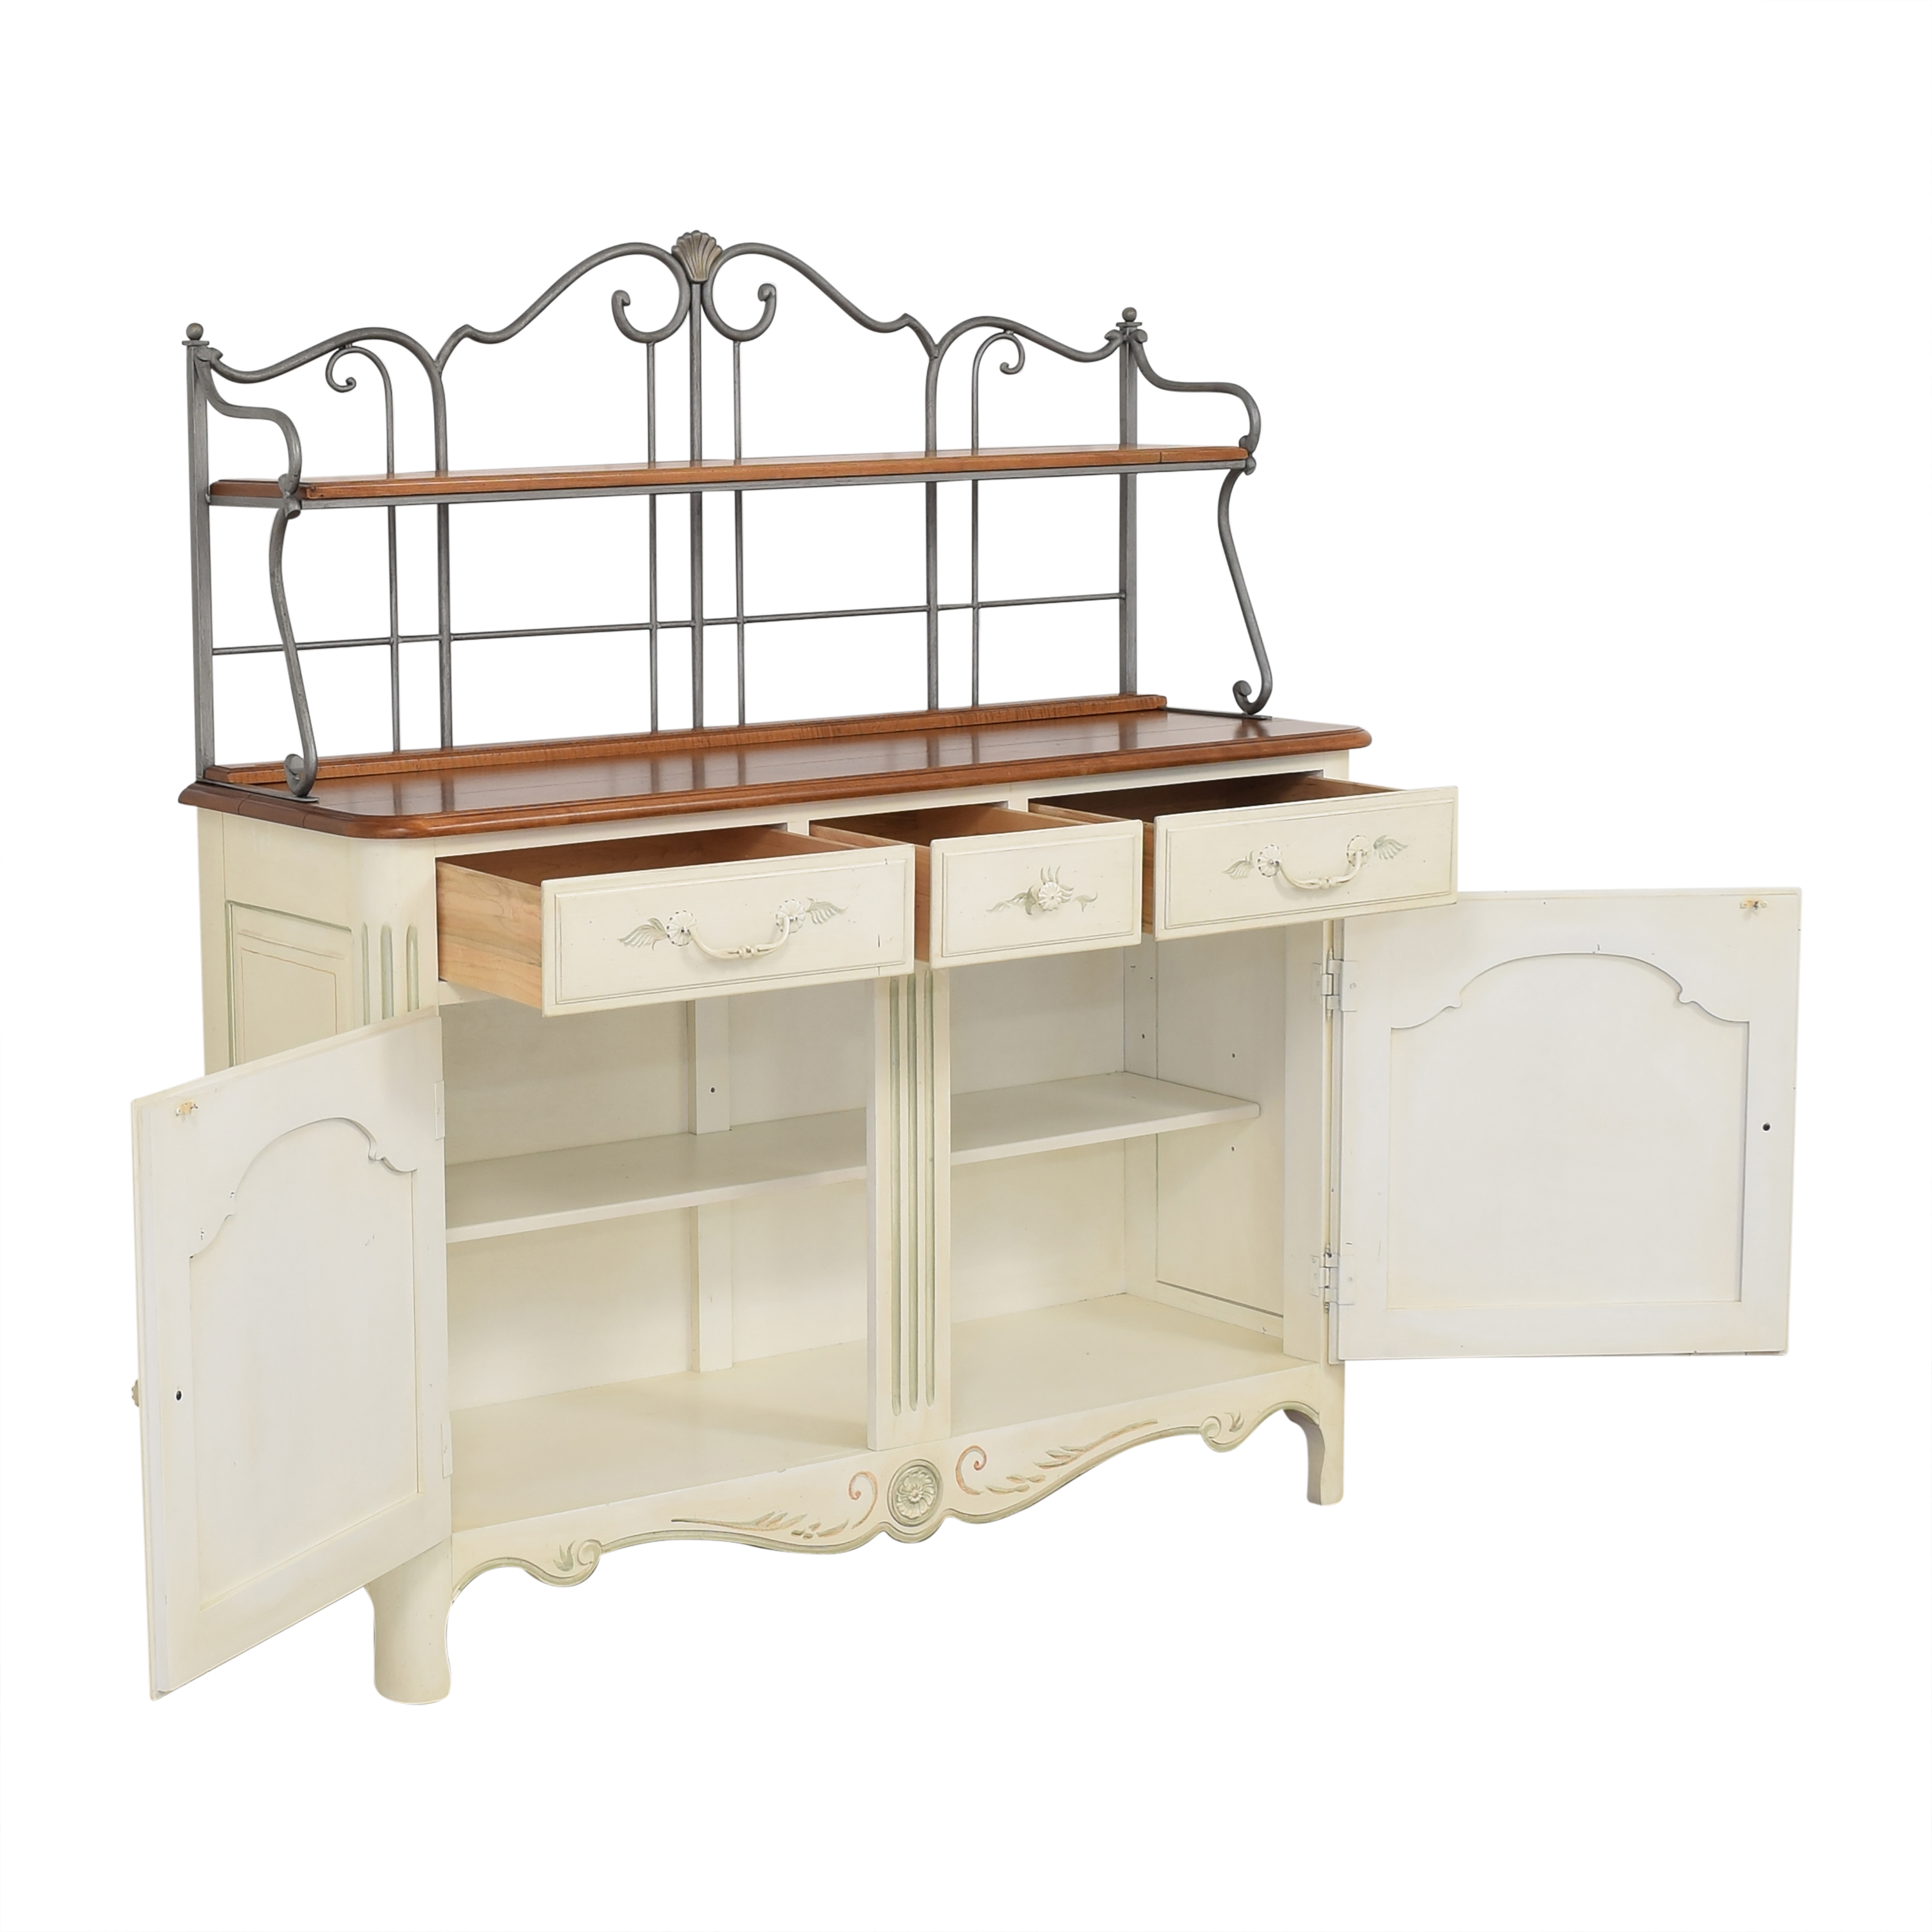 buy Ethan Allen French Country Sideboard Baker's Rack Ethan Allen Cabinets & Sideboards